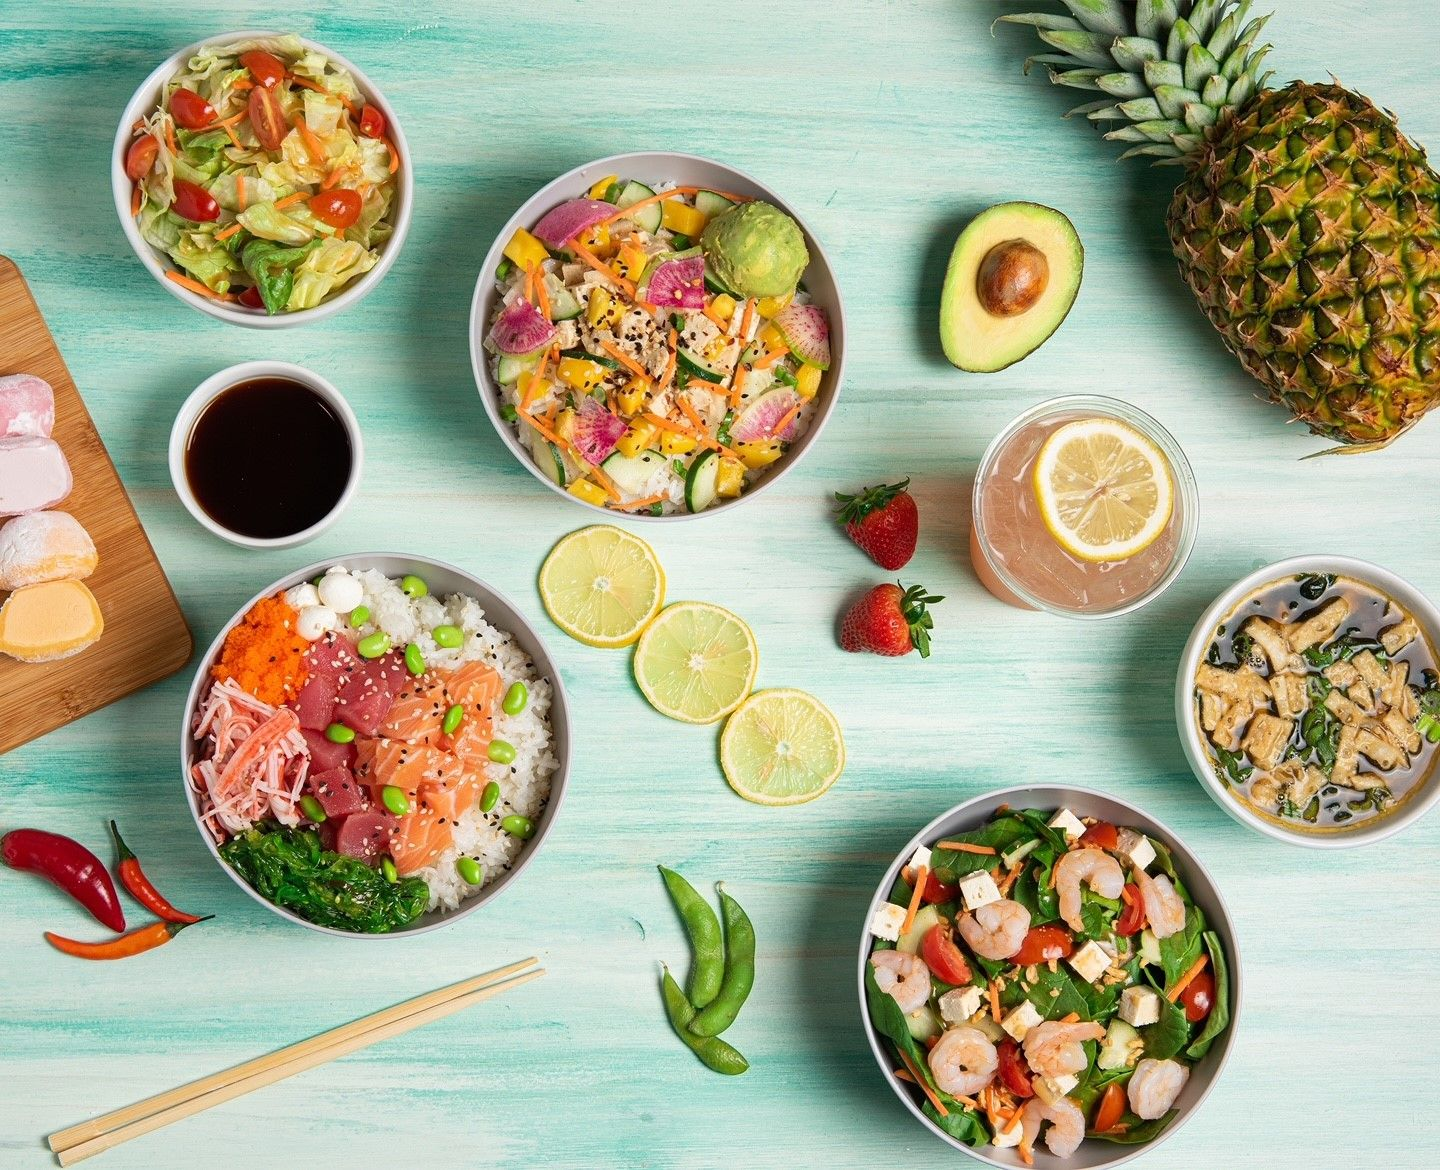 Kona Poké Announces Third Restaurant In Apopka, Florida Opening Late 2021 And Future Locations Statewide